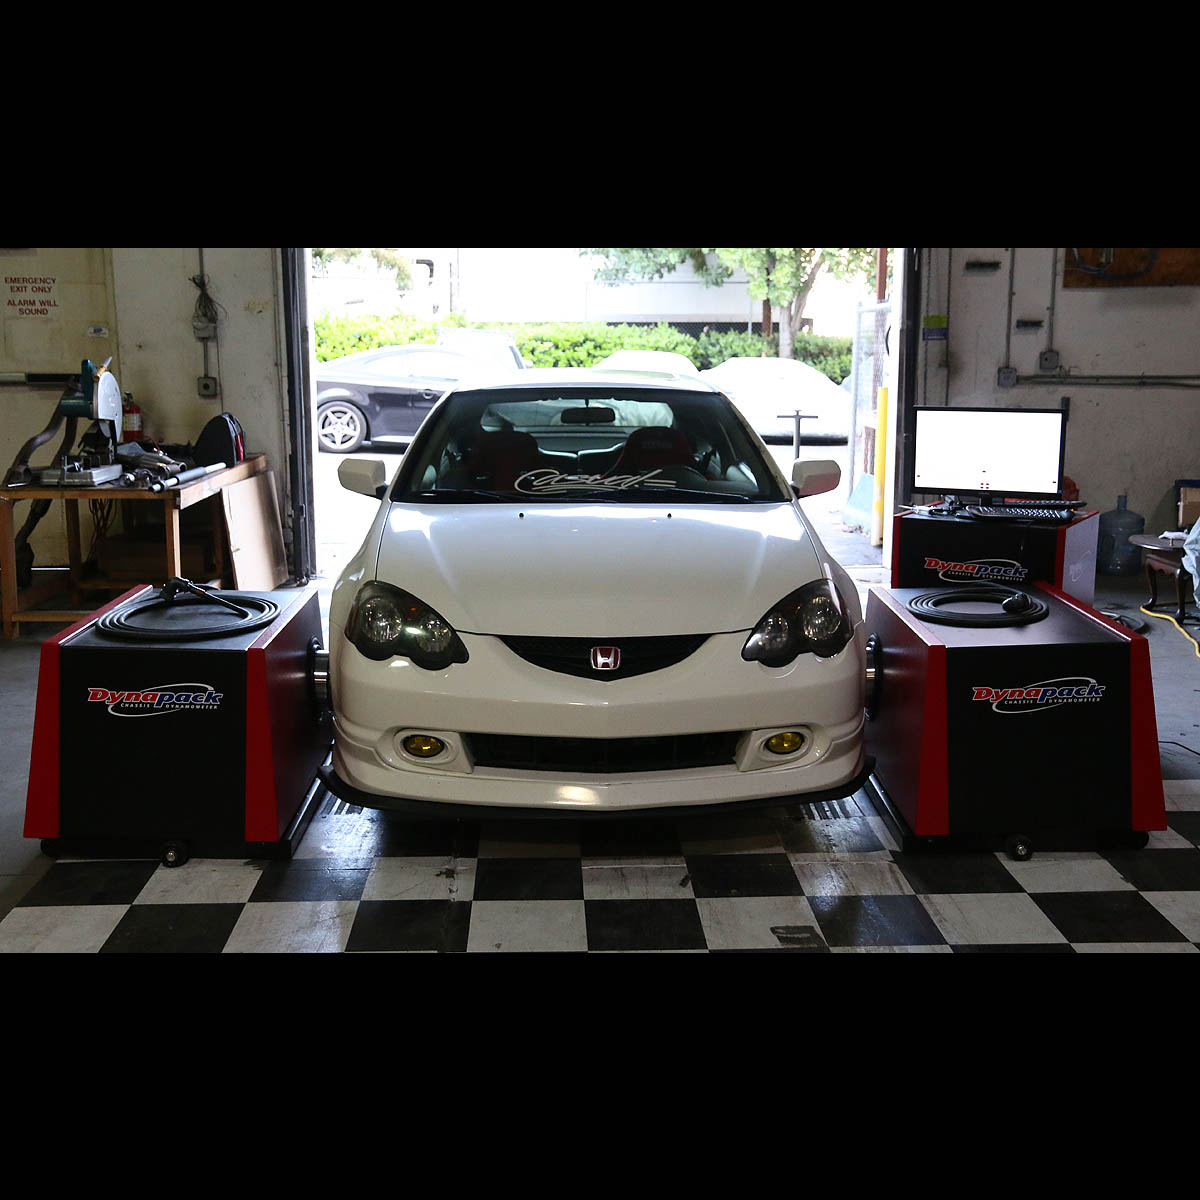 "Acura Rsx Type S For Sale In Nj: 02-06 Acura Rsx DC5 Type-S K20 4"" Muffler Tip Catback Cat"